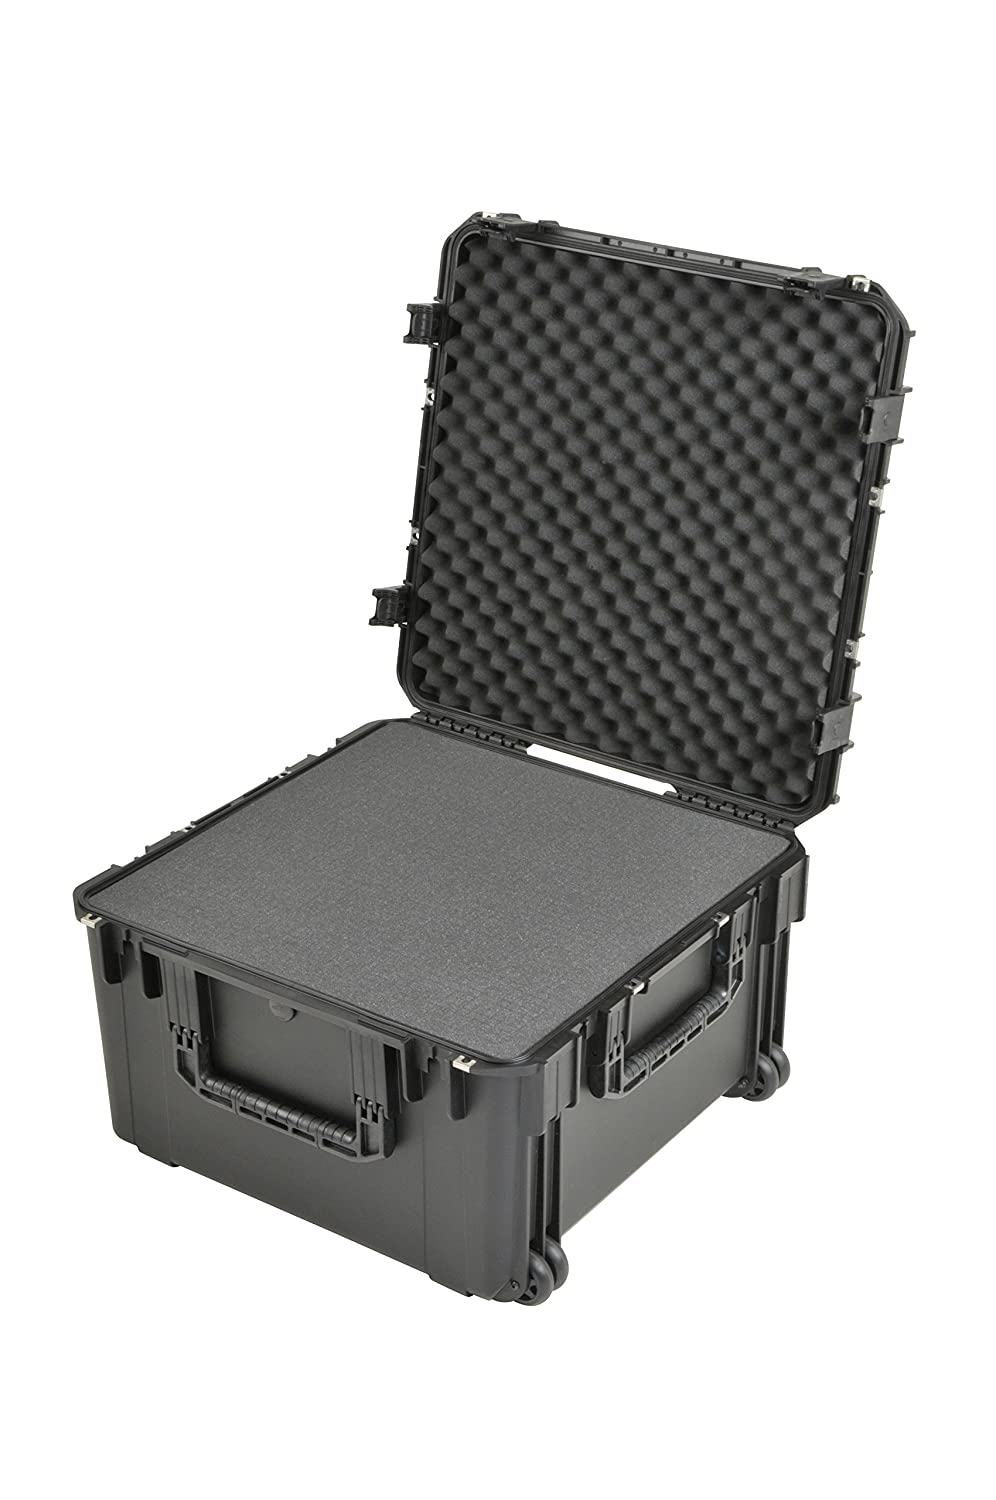 SKB 3i-2424-14BC iSeries Waterproof Case 24 x 24 x 14 with wheels cubed foam